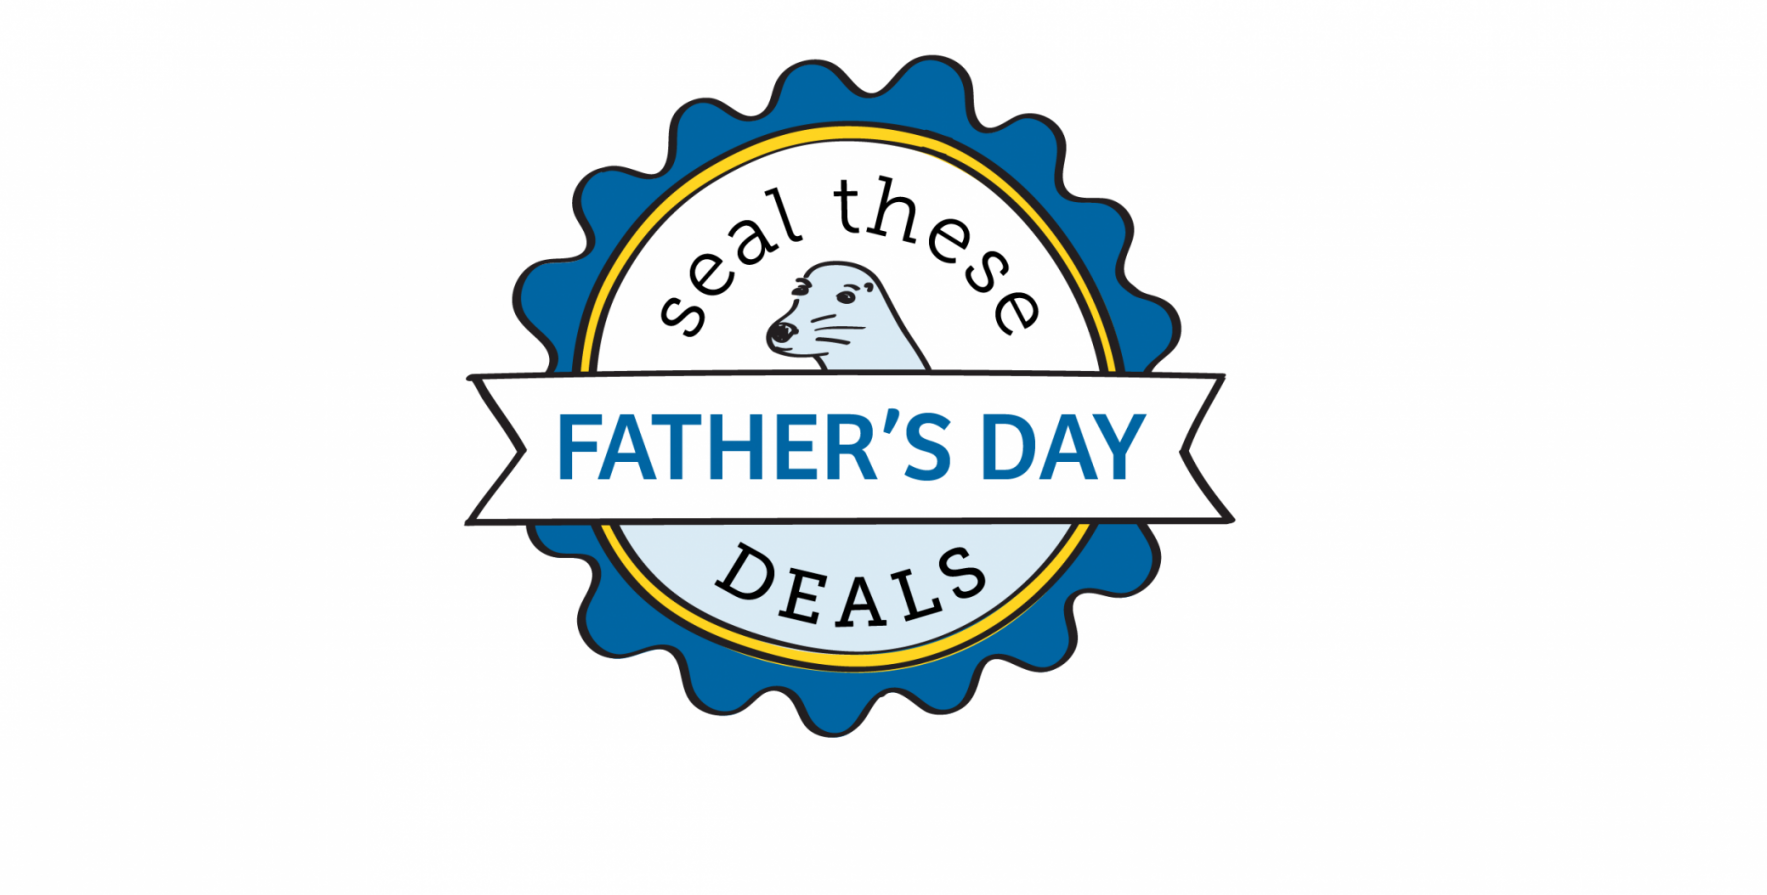 Seal These Deals: Father's Day Coupons and Deals! - ShareASale Blog